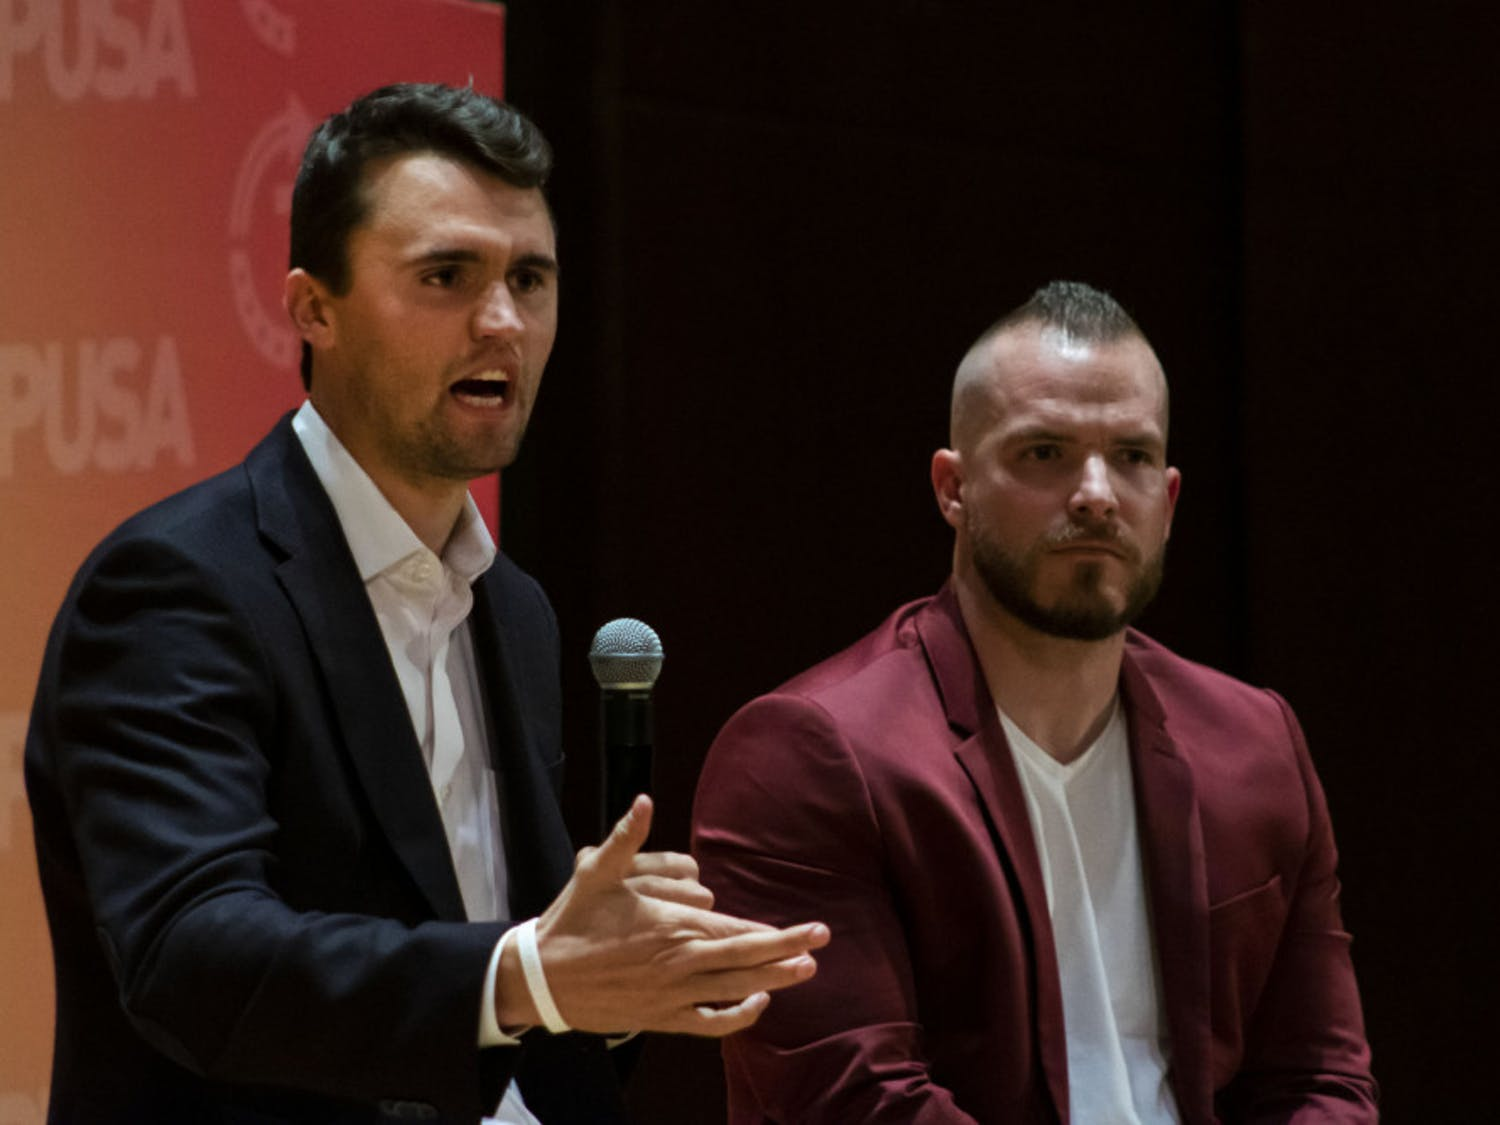 Charlie Kirk, leader of Turning Point USA,  and Graham Allen, political speaker, answer questions from an audience in University Auditorium. Kirk was one of several conservative figures to criticize UF for suspending three student groups for violating university COVID-19 policies.